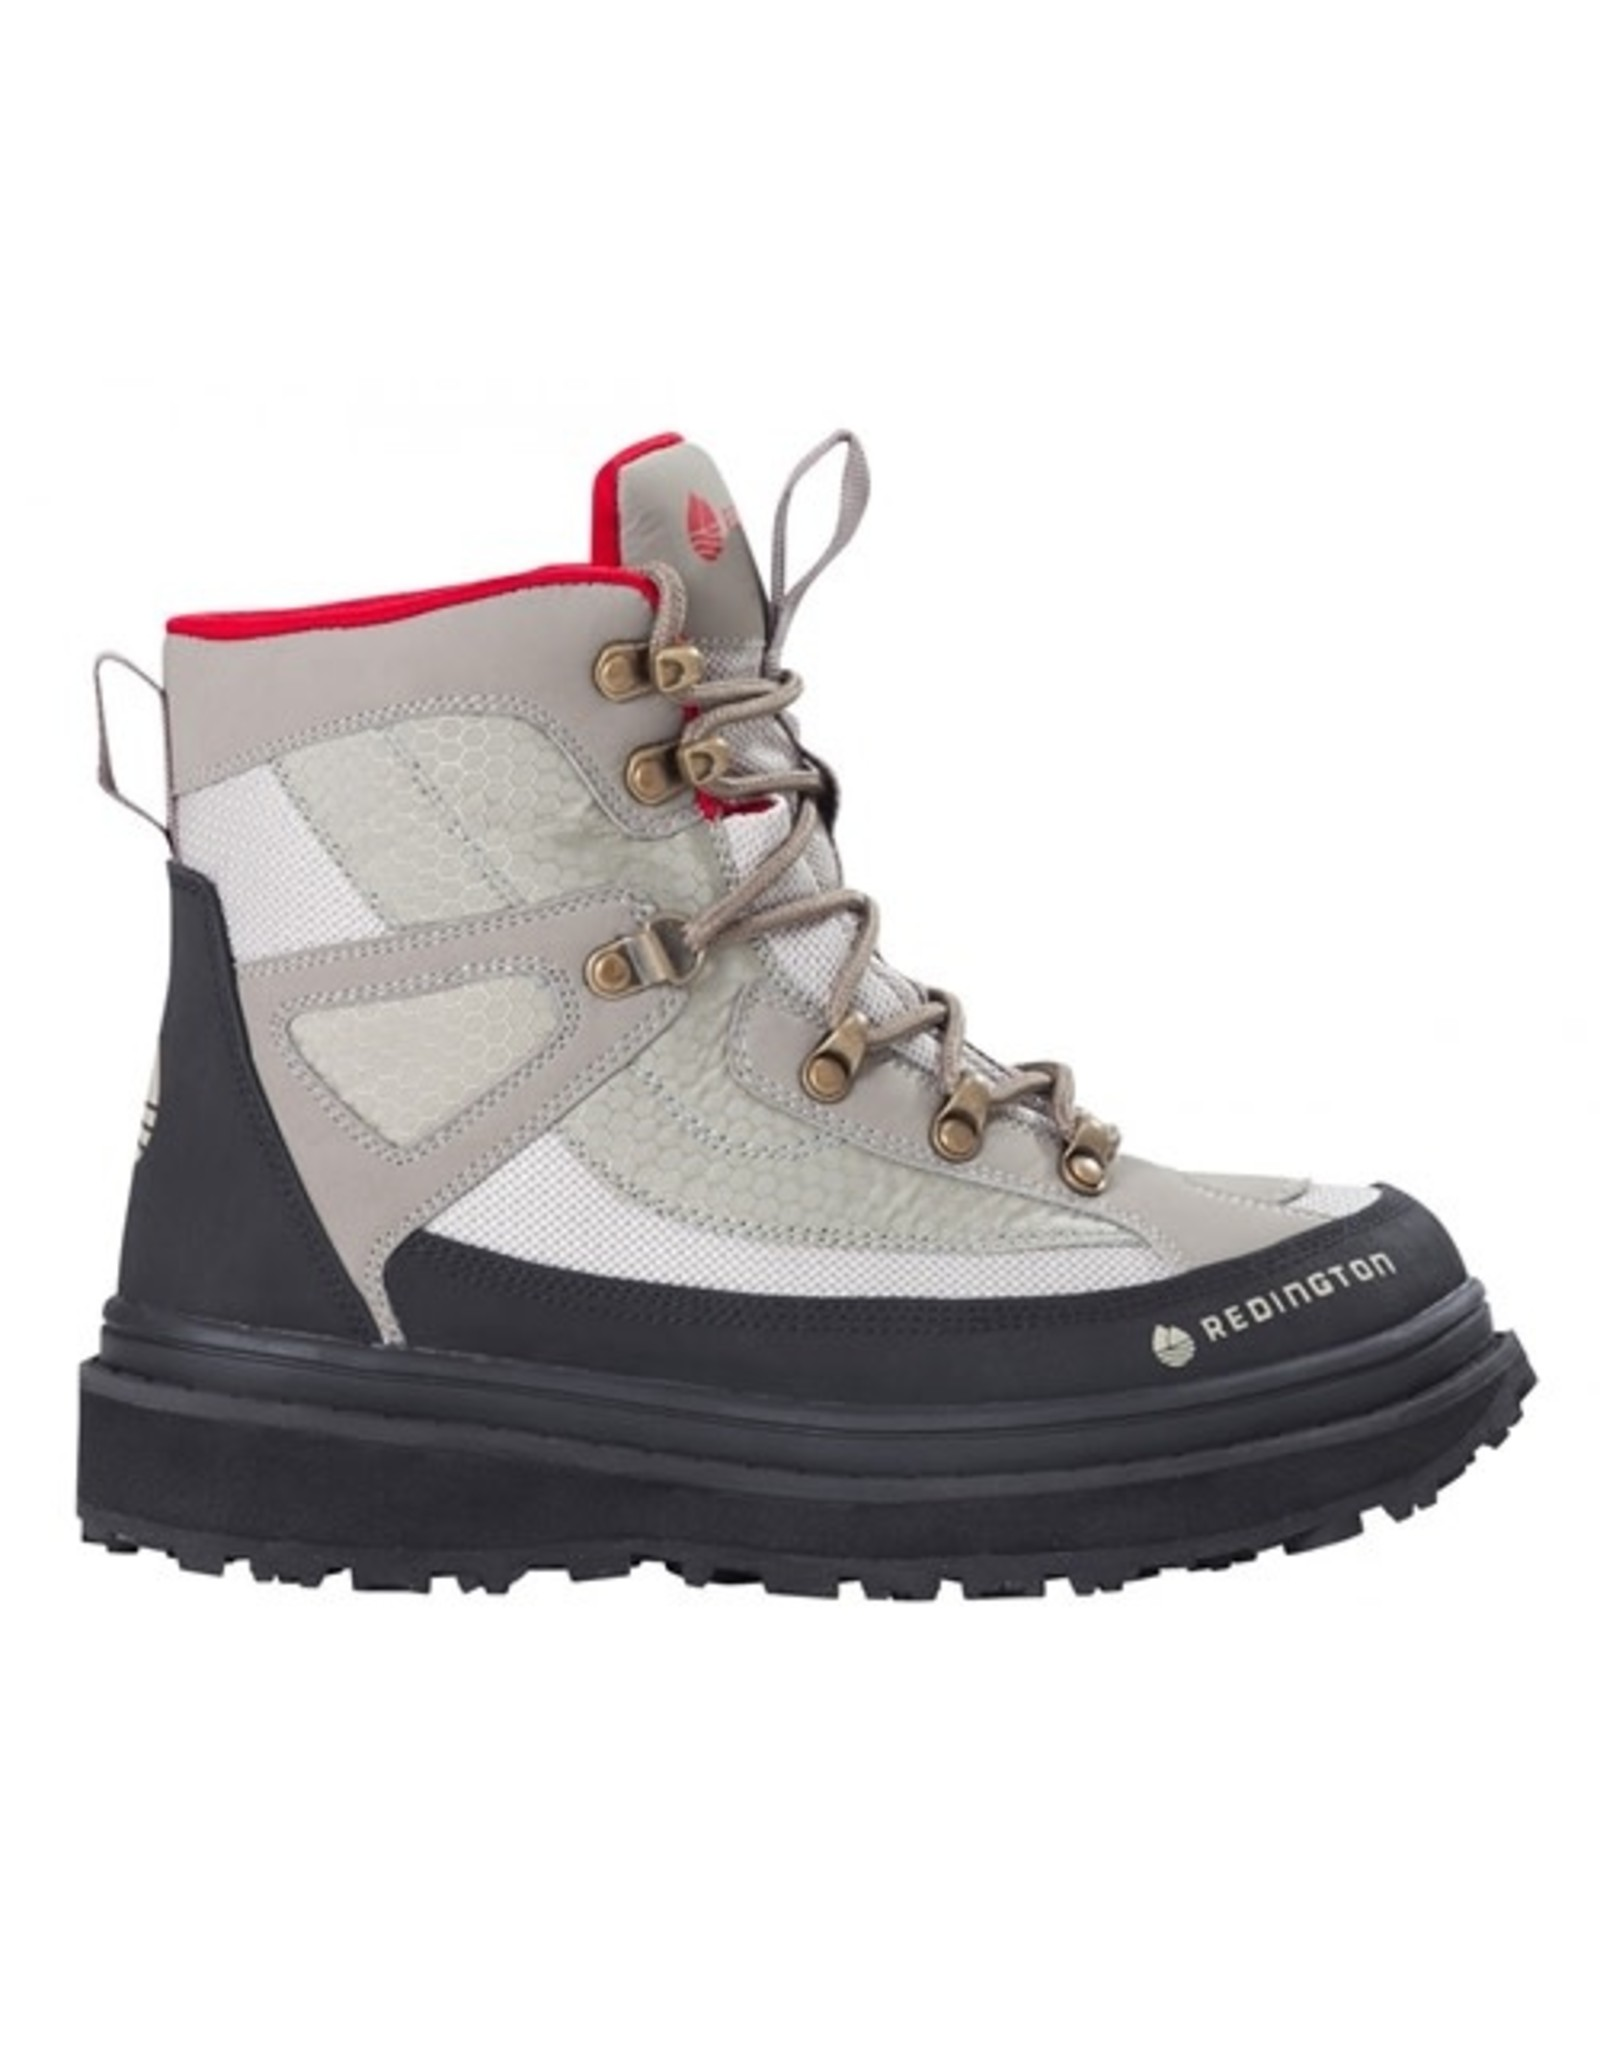 Redington Redington Women's Willow River Boot - Sticky Rubber